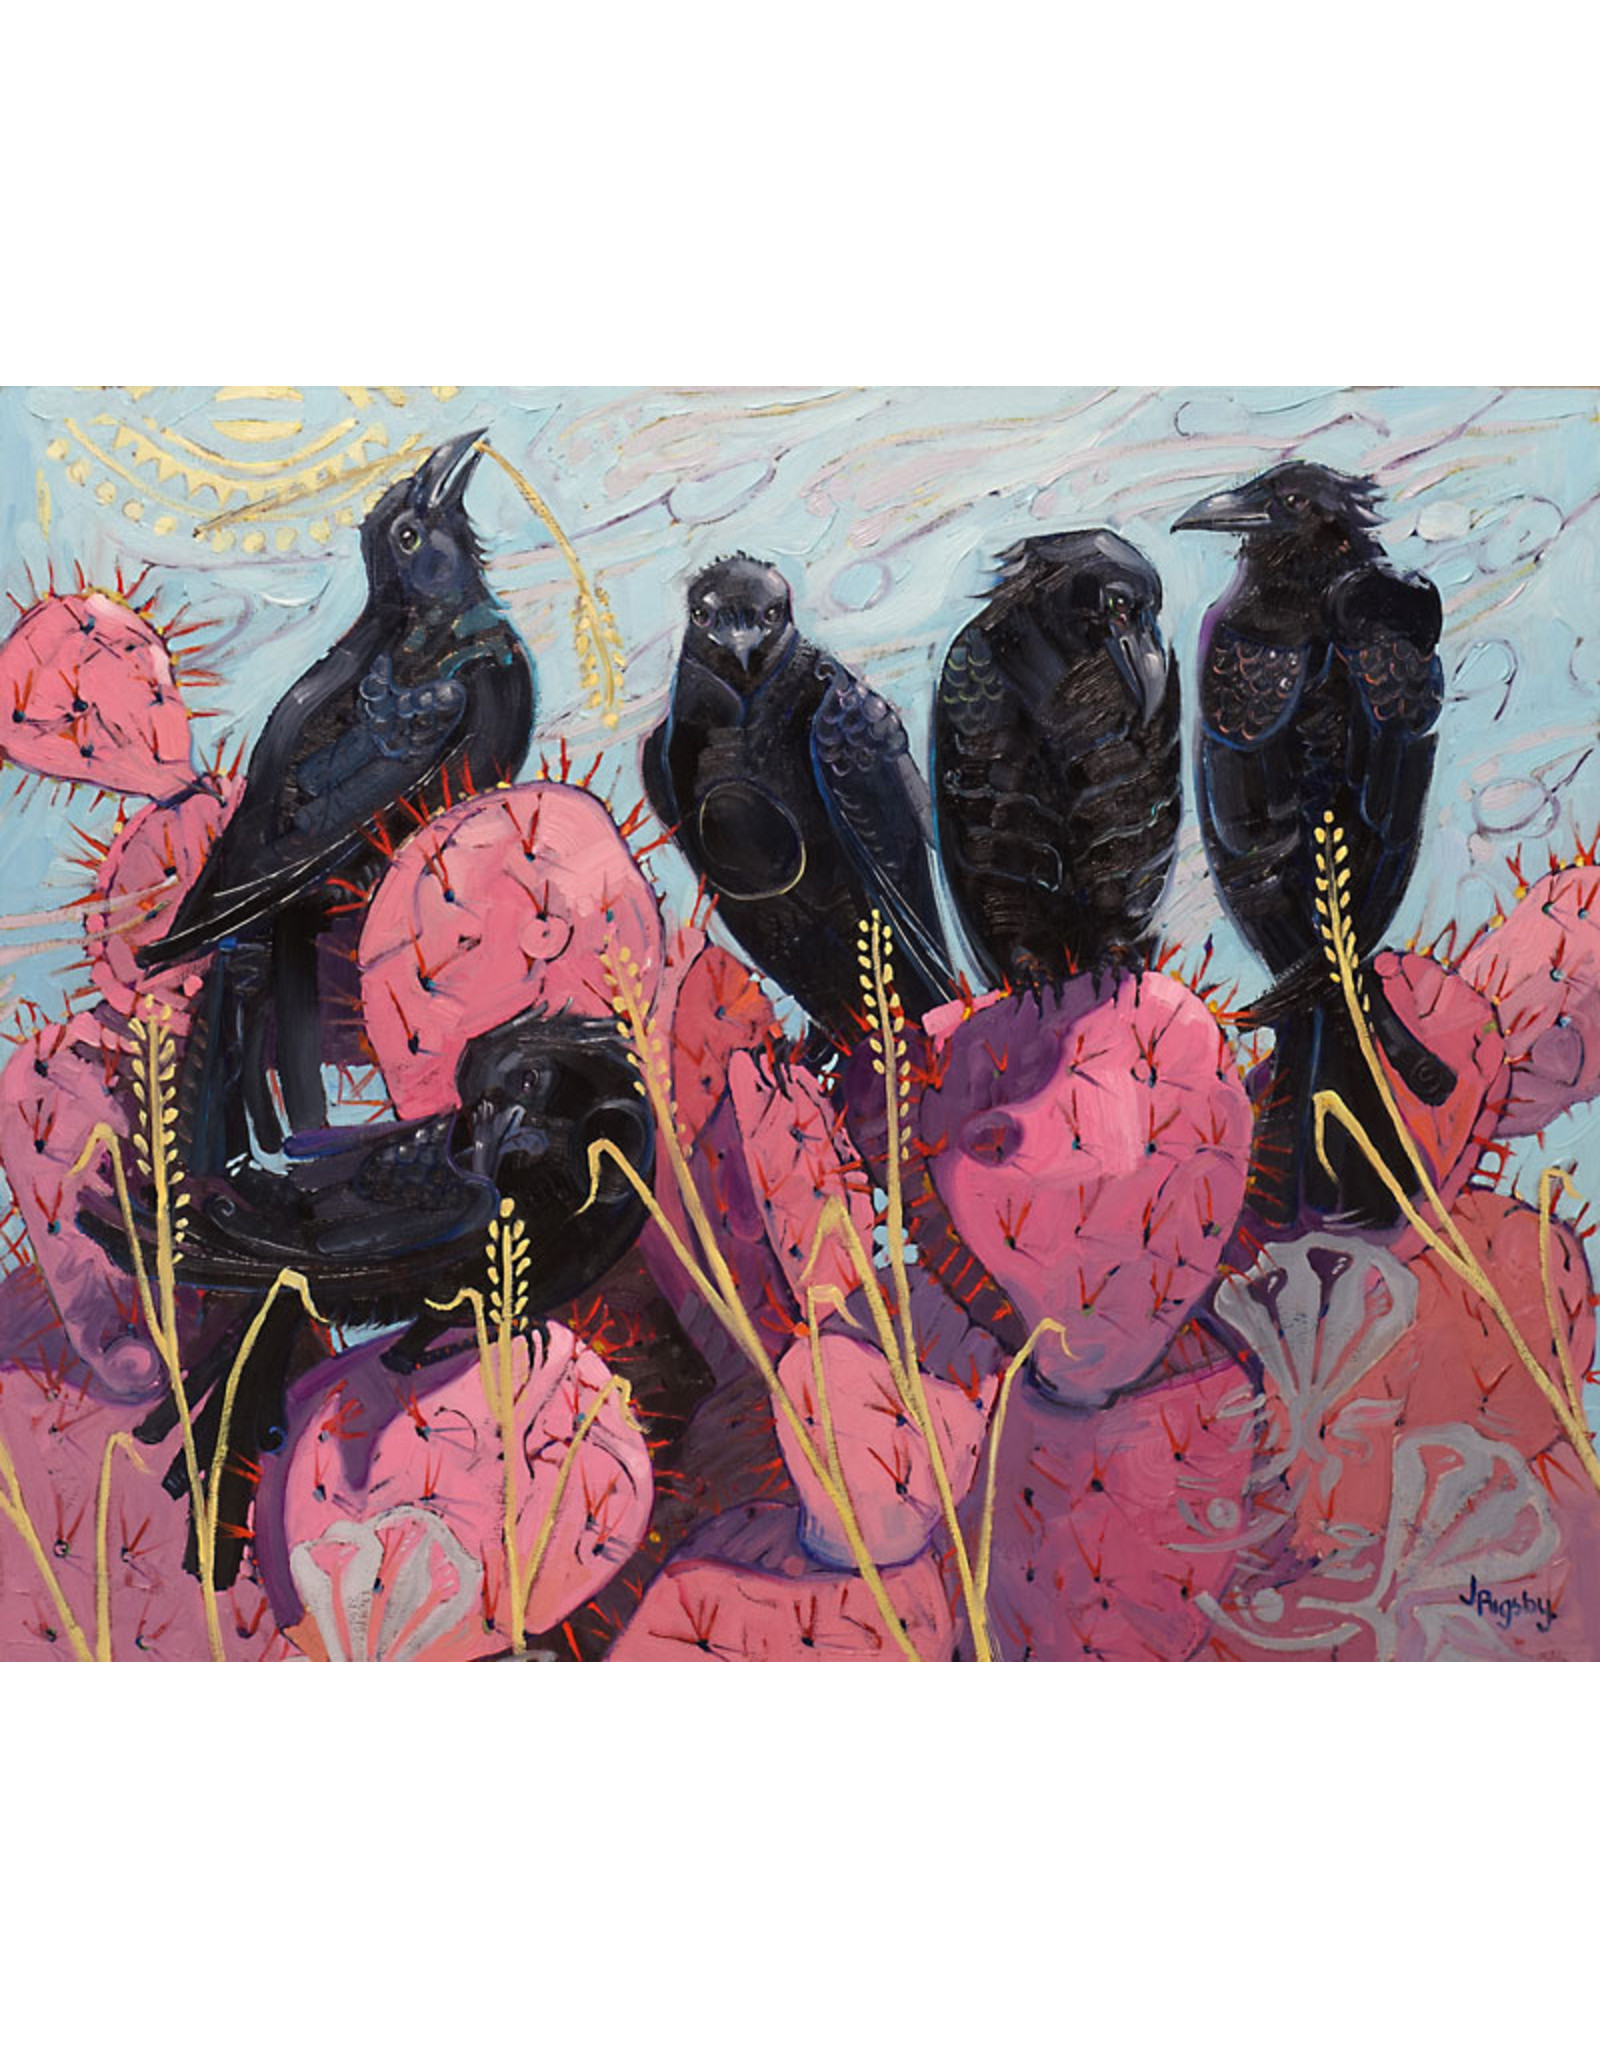 Jody Rigsby Painting The Caws - Jody Rigsby